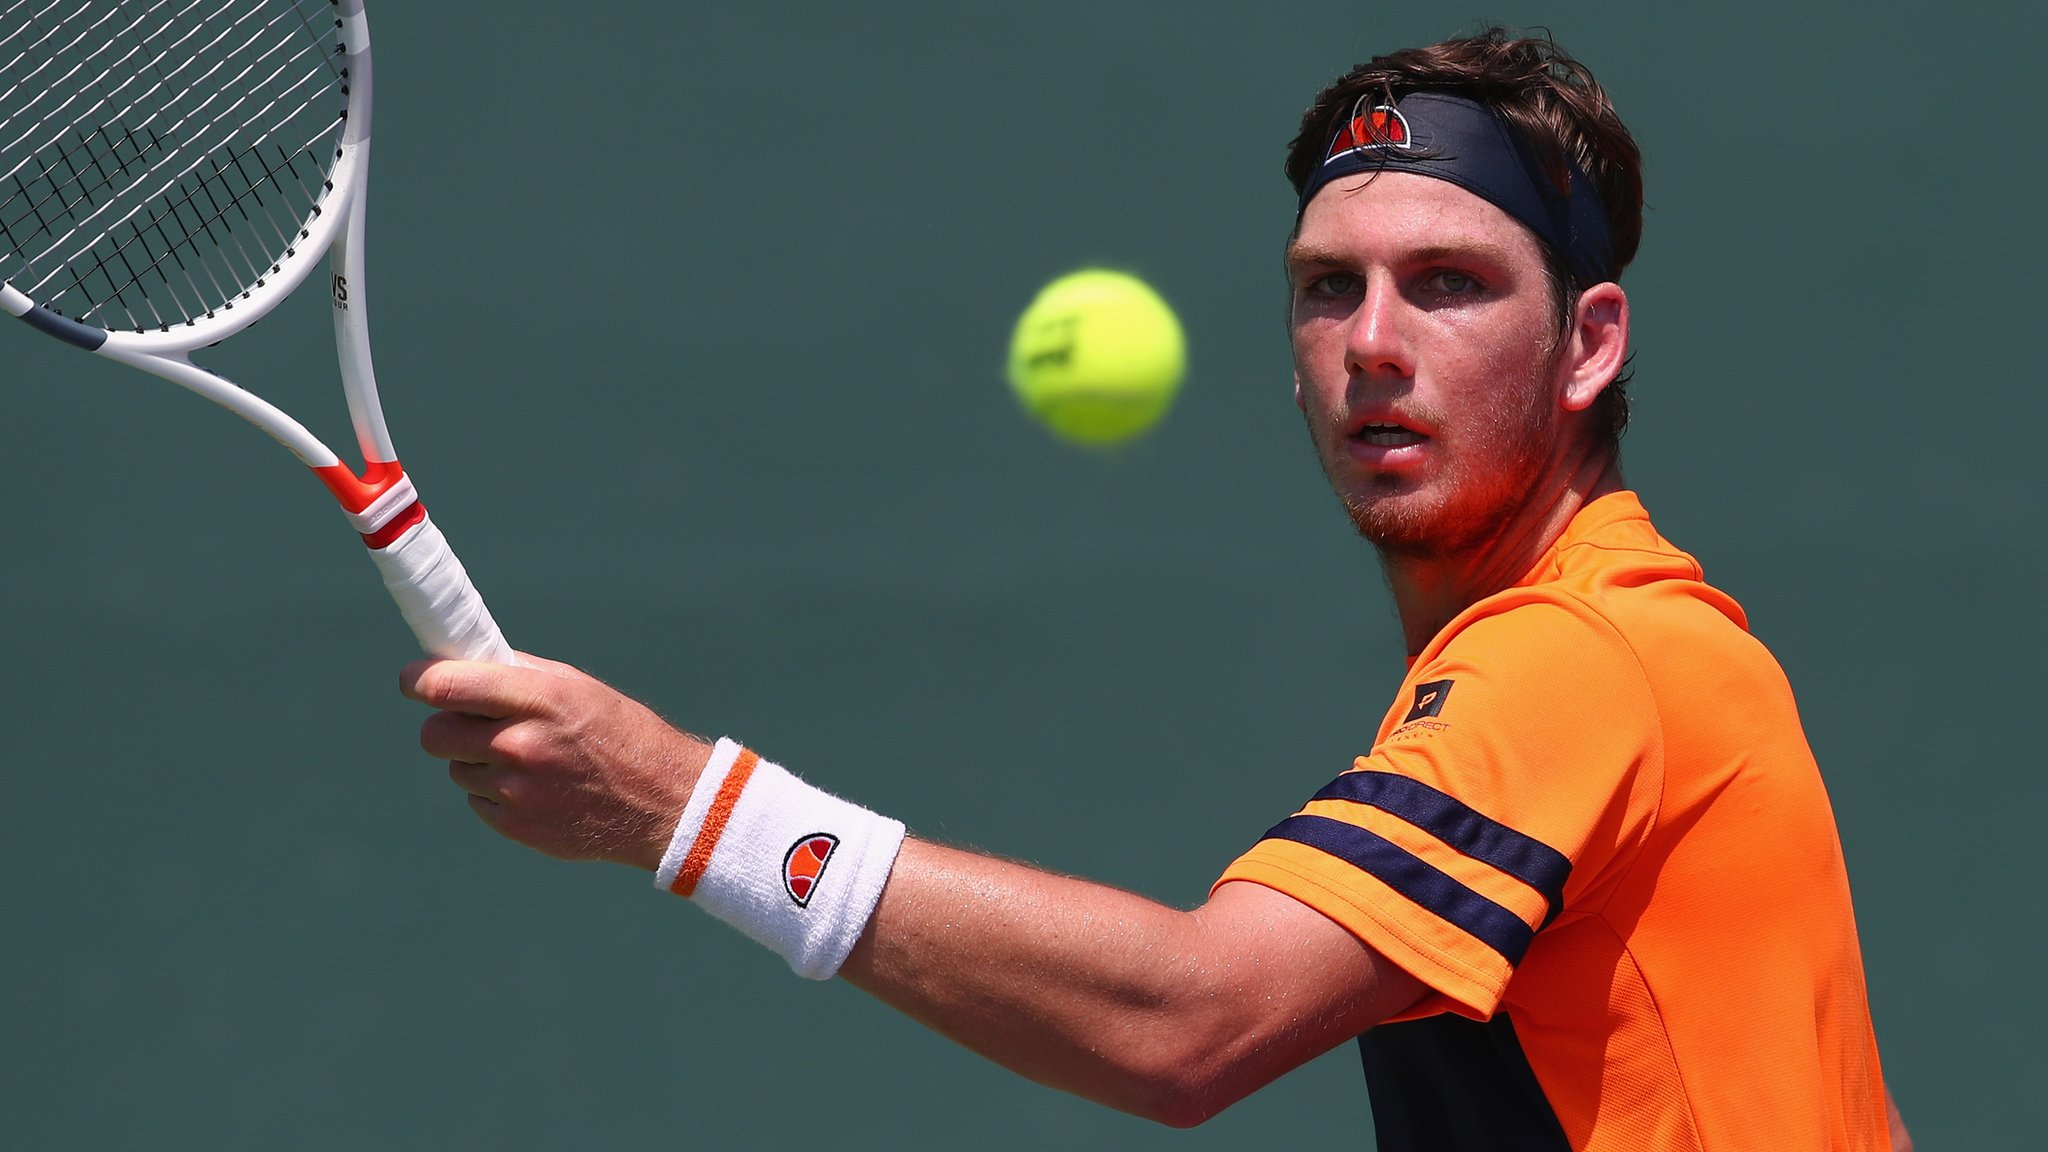 Lyon Open: Cameron Norrie beaten by Gilles Simon in semi-final